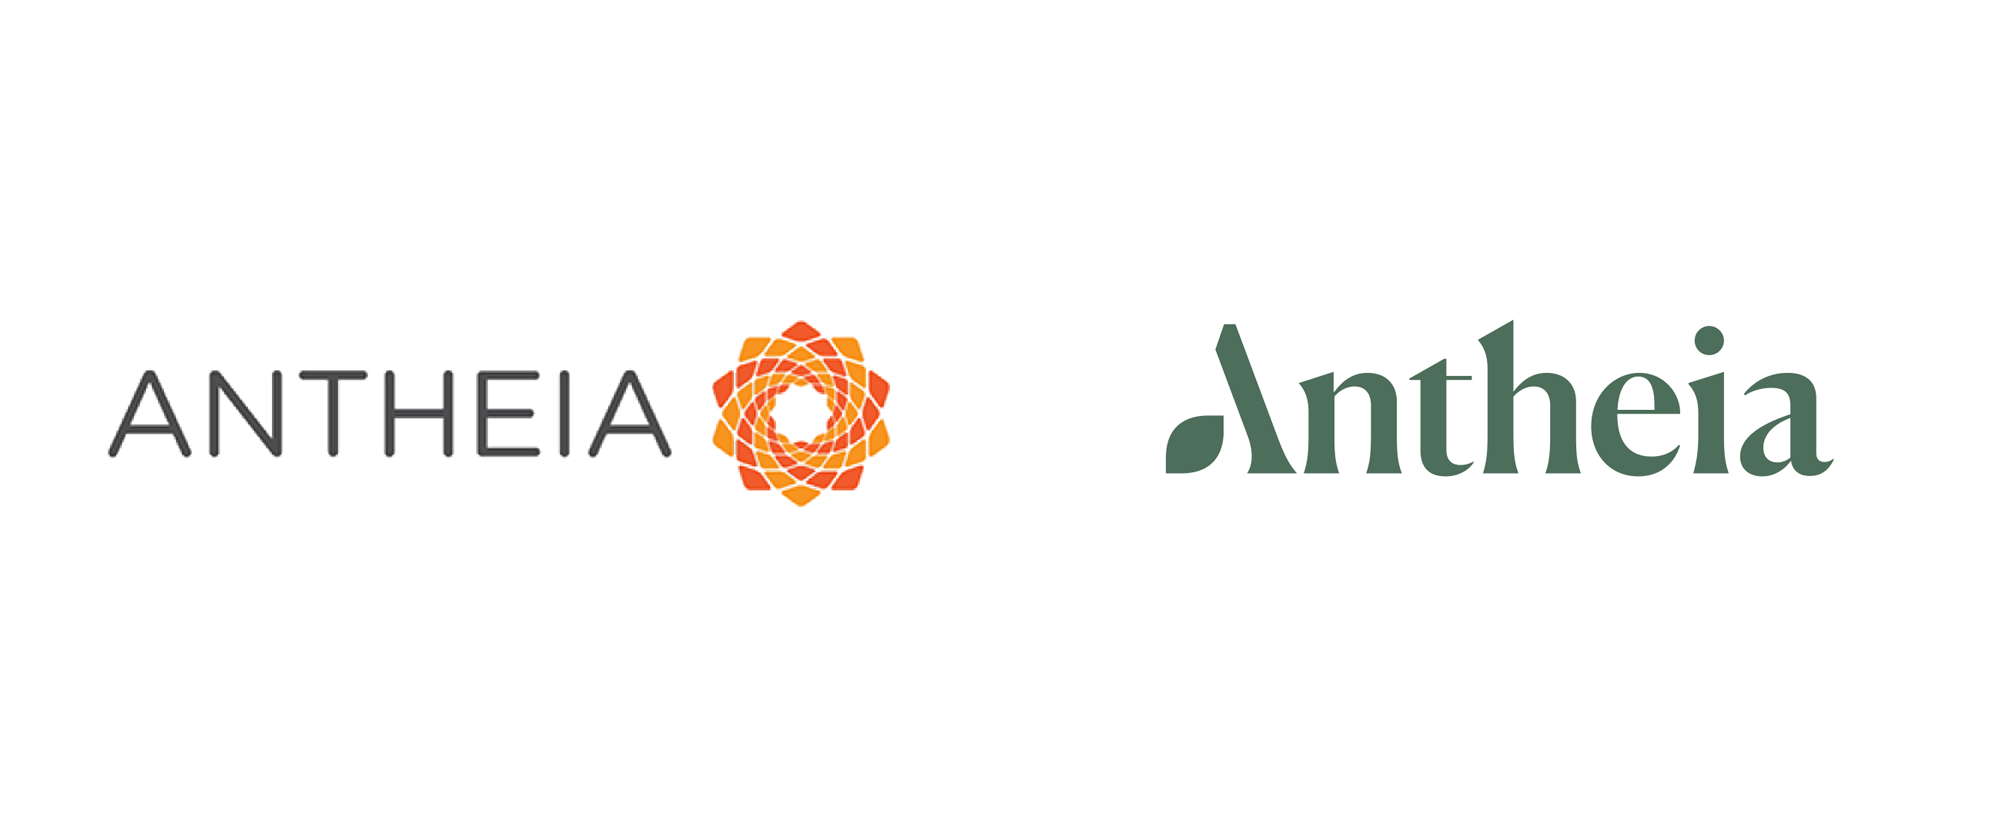 New Logo and Identity for Antheia by Mucho